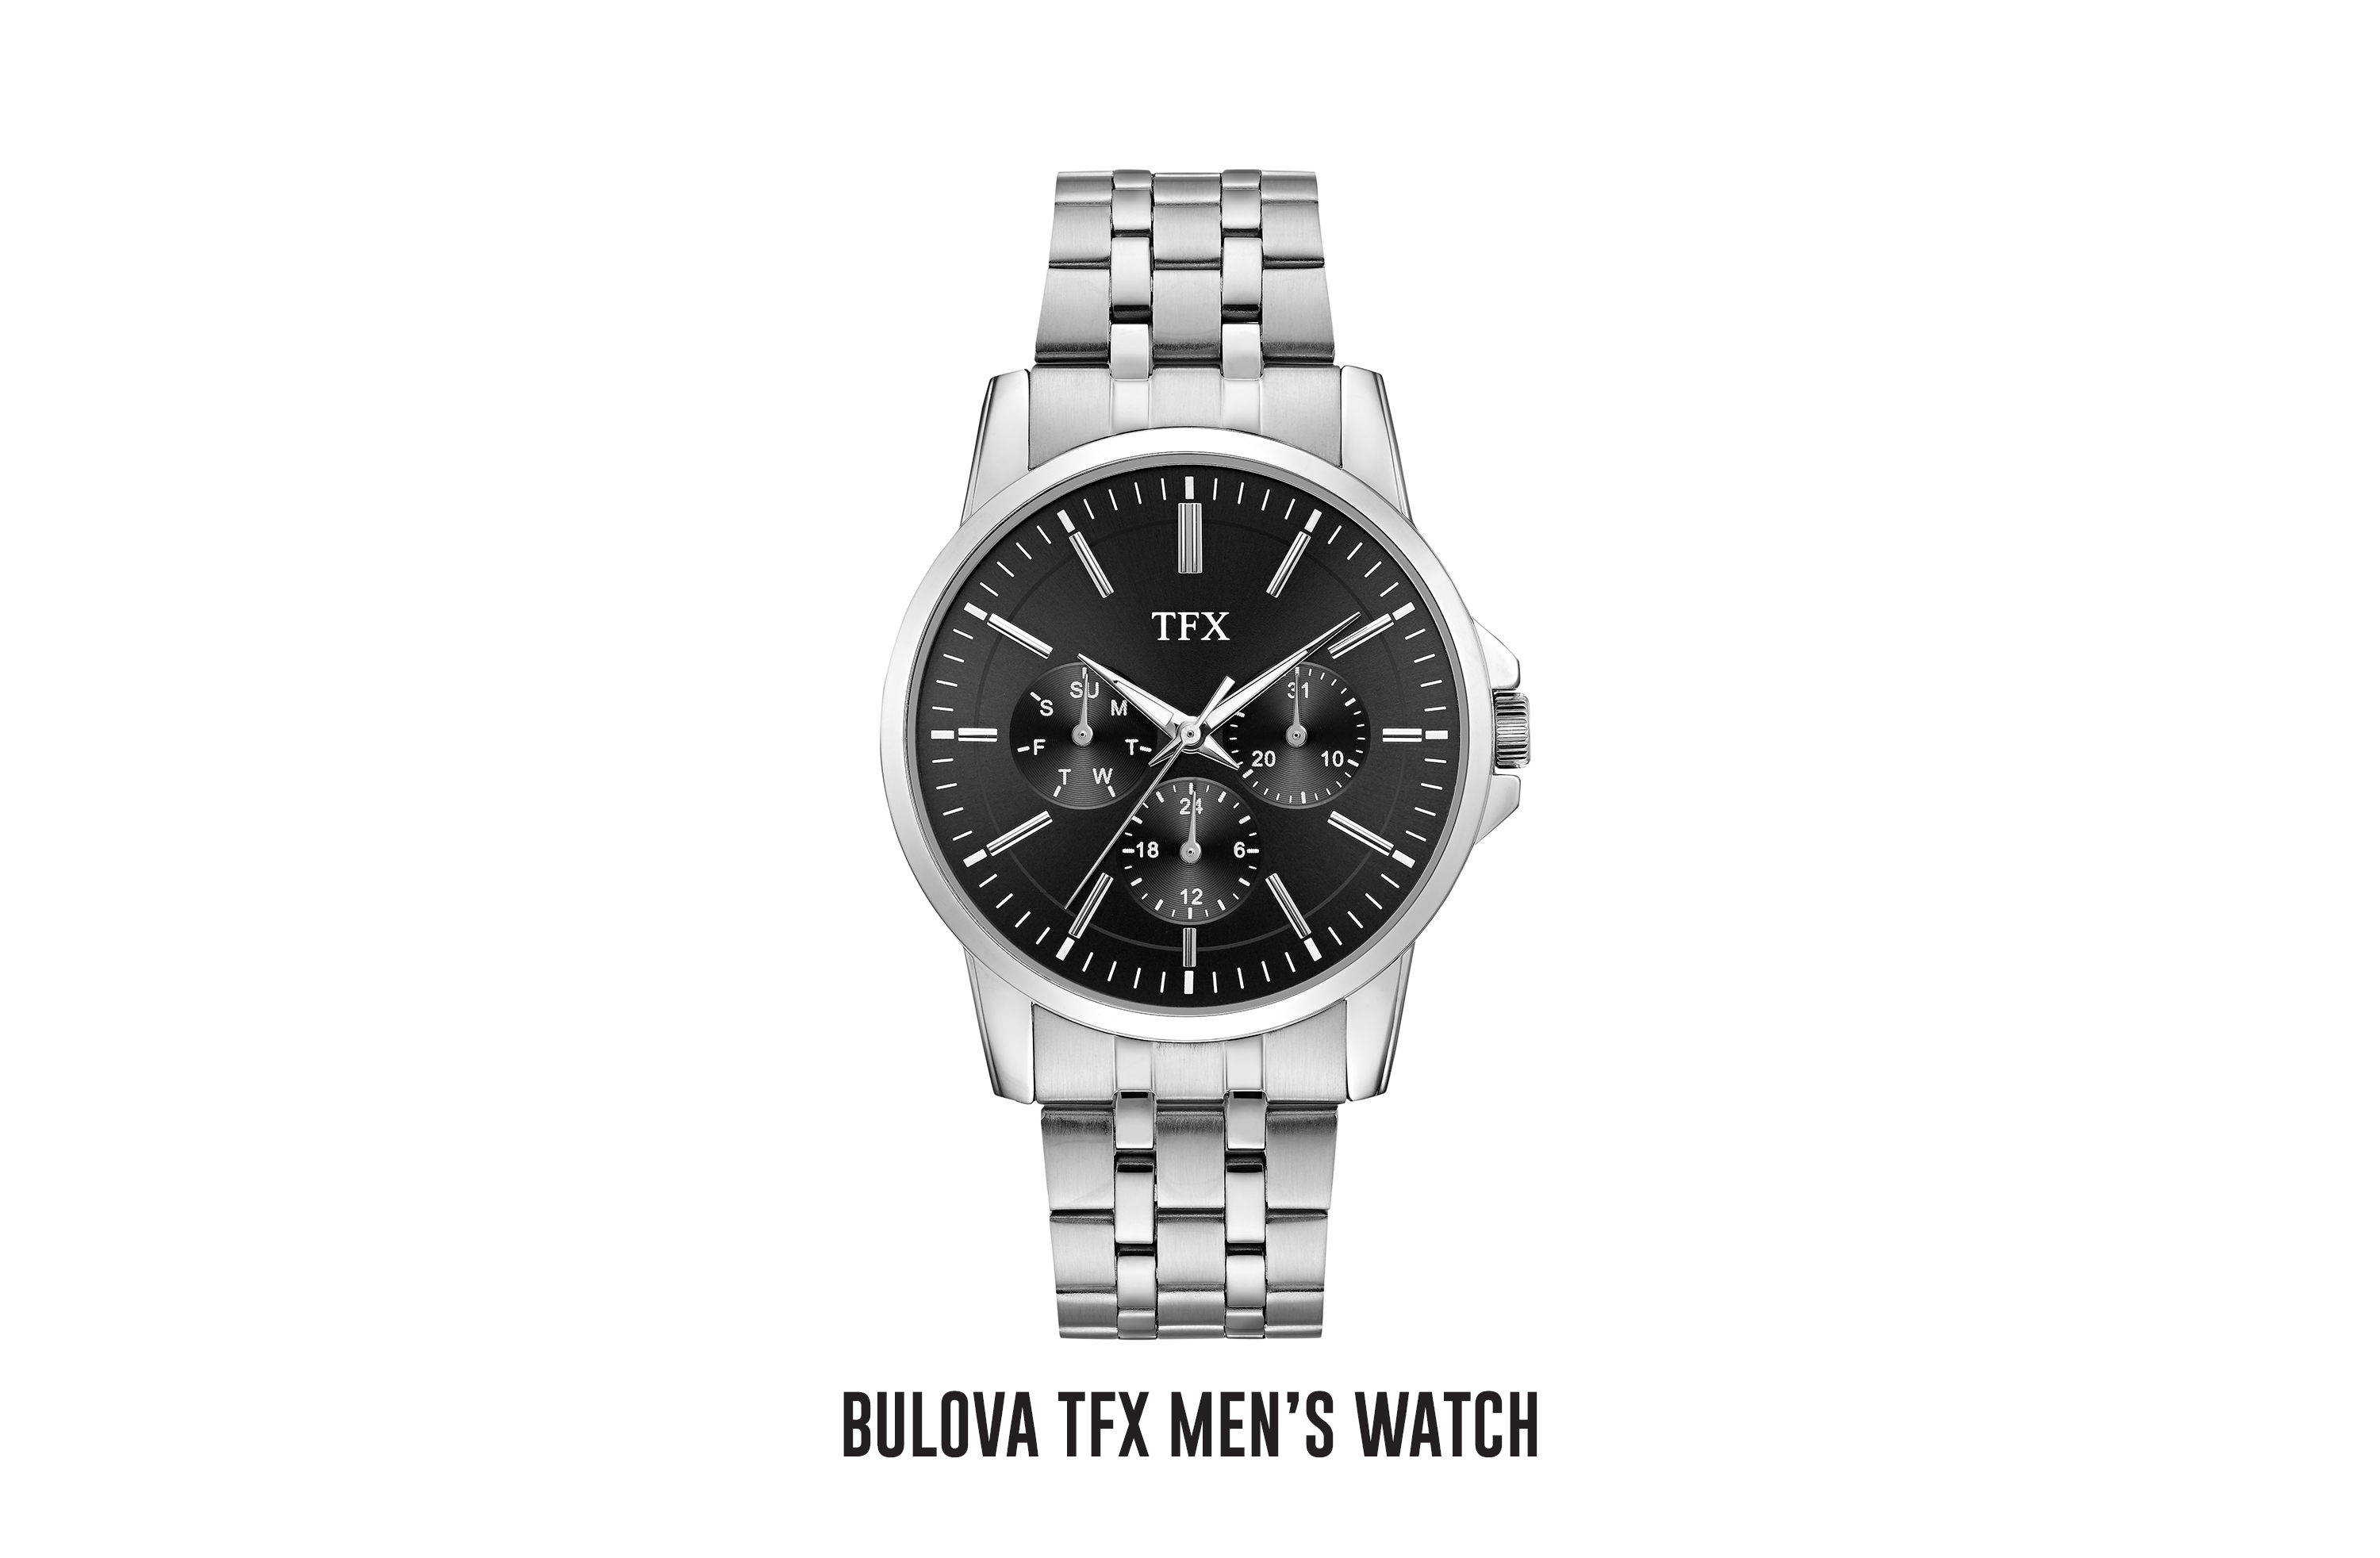 Bulova TFX men's watch